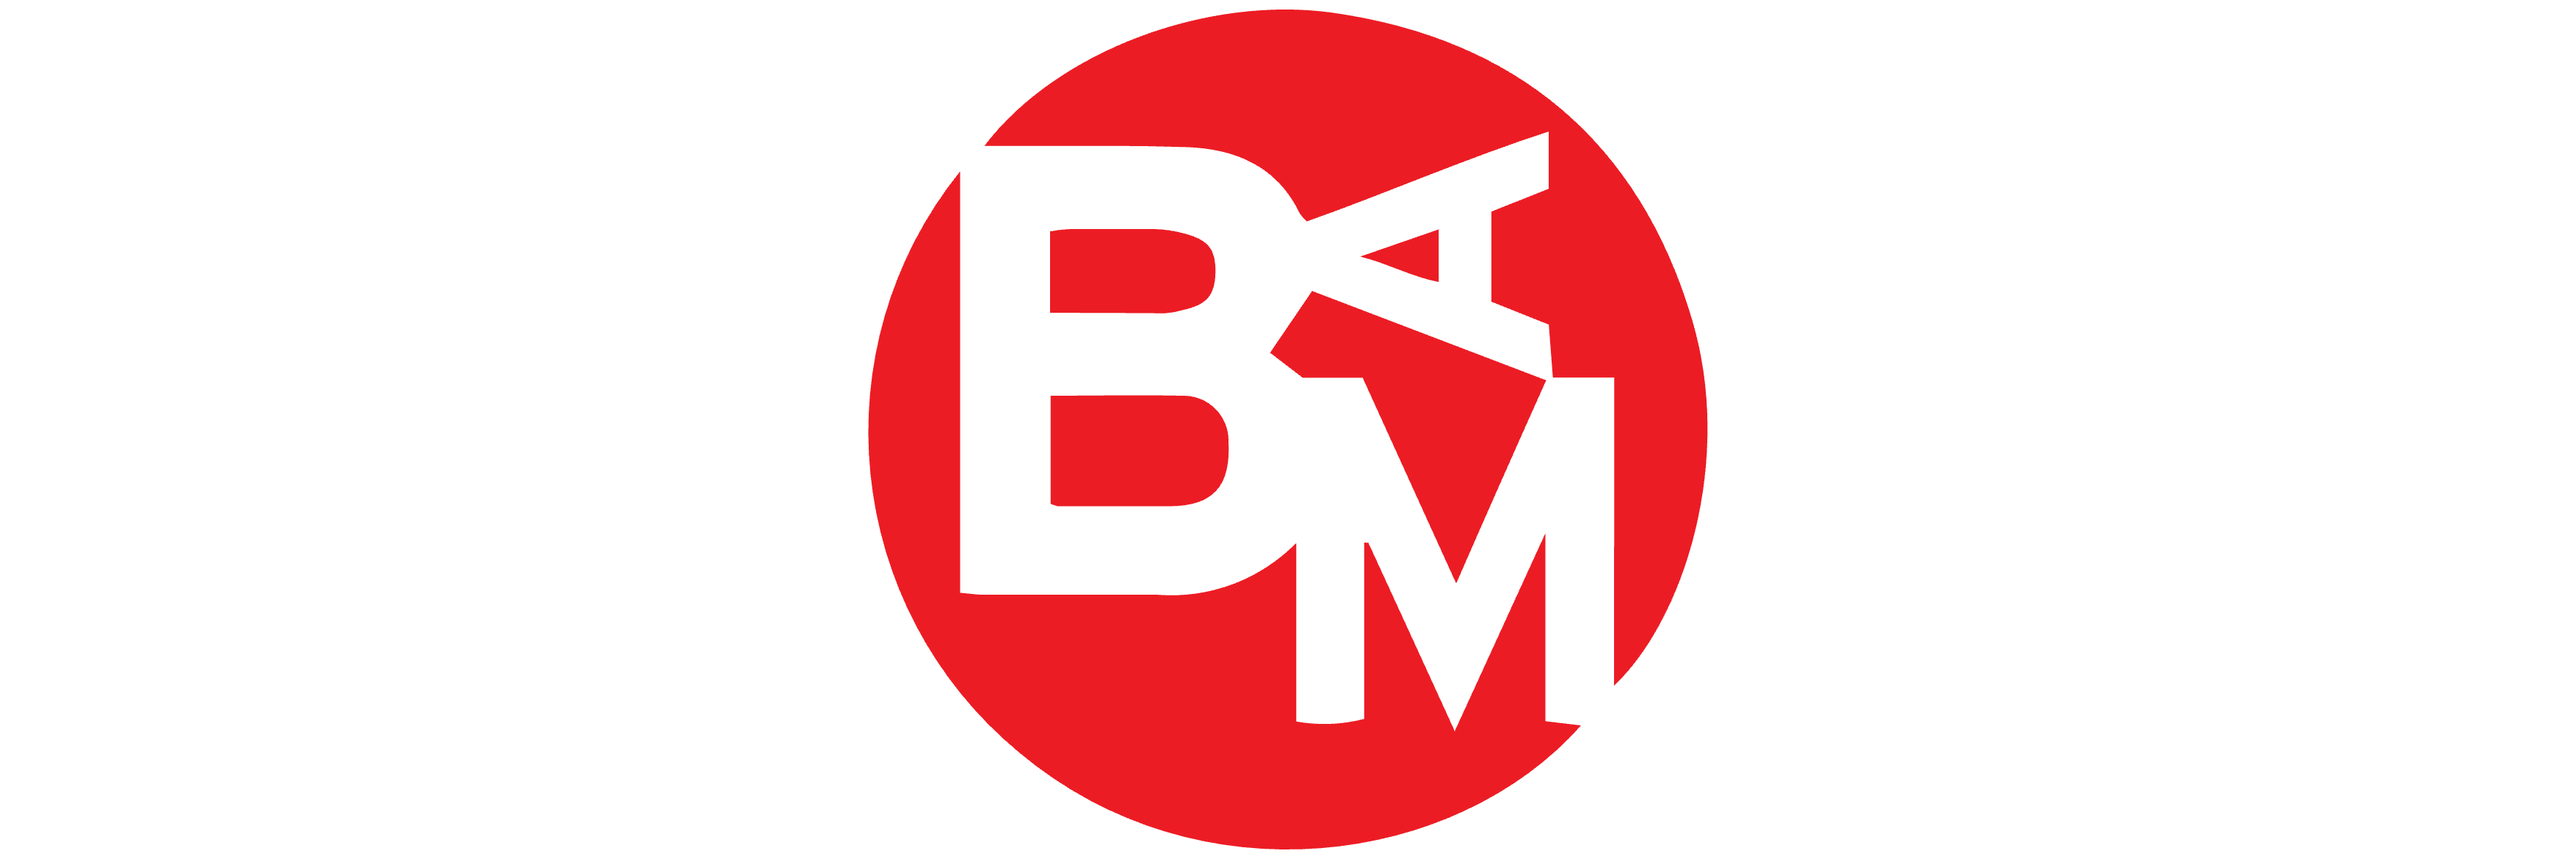 BAM Colombia